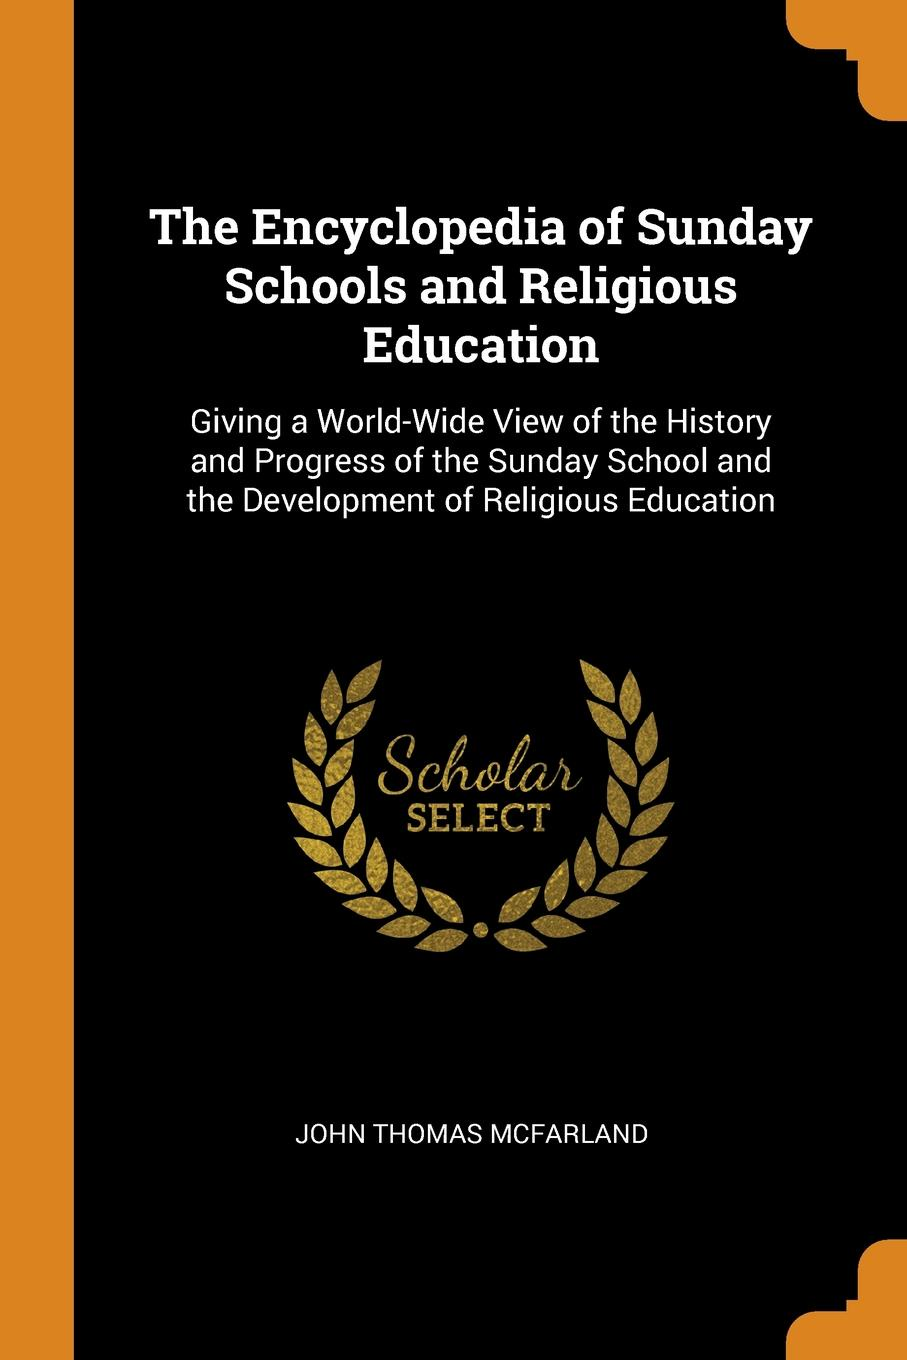 The-Encyclopedia-of-Sunday-Schools-and-Religious-Education-Giving-a-World-Wide-View-of-the-History-and-Progress-of-the-Sunday-School-and-the-Developme